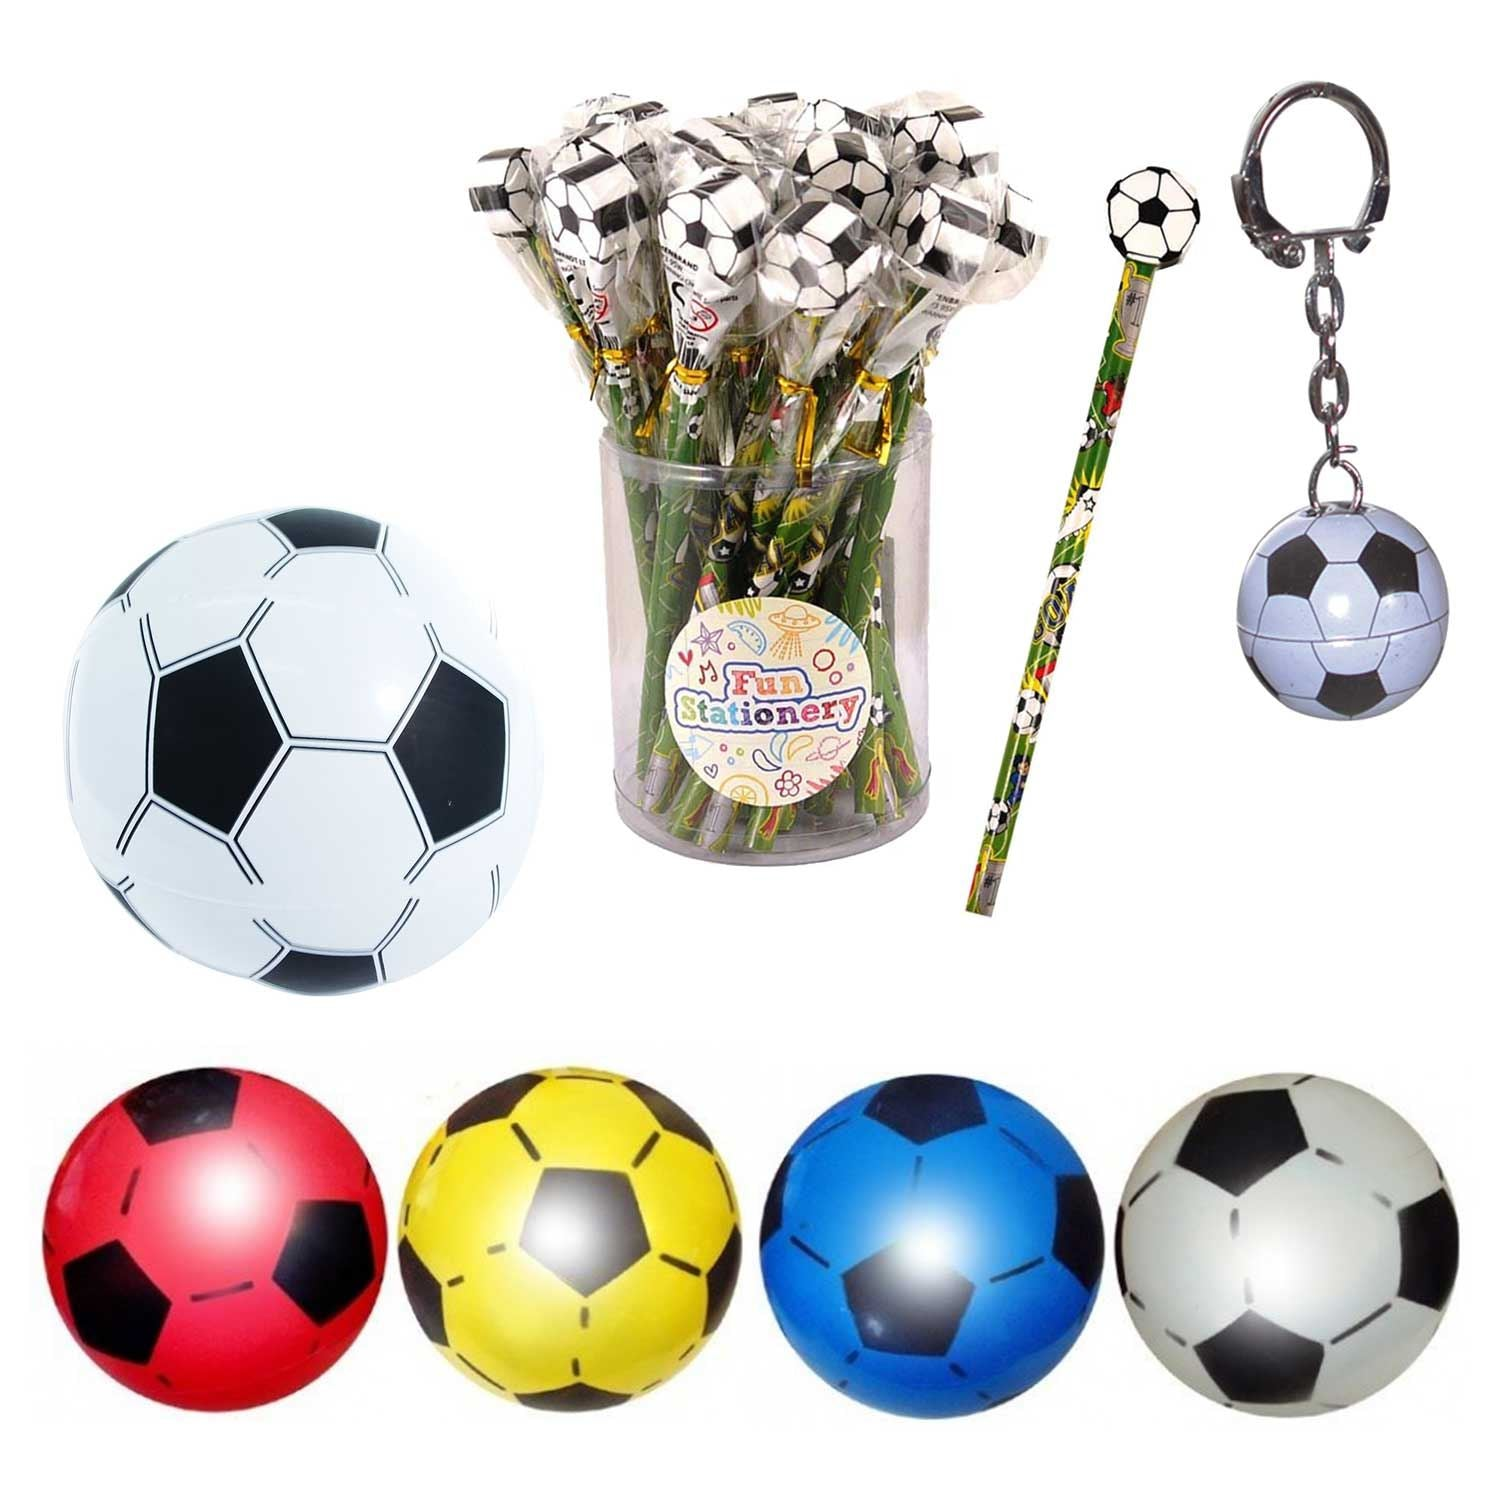 Football Tombola Game - Full Set